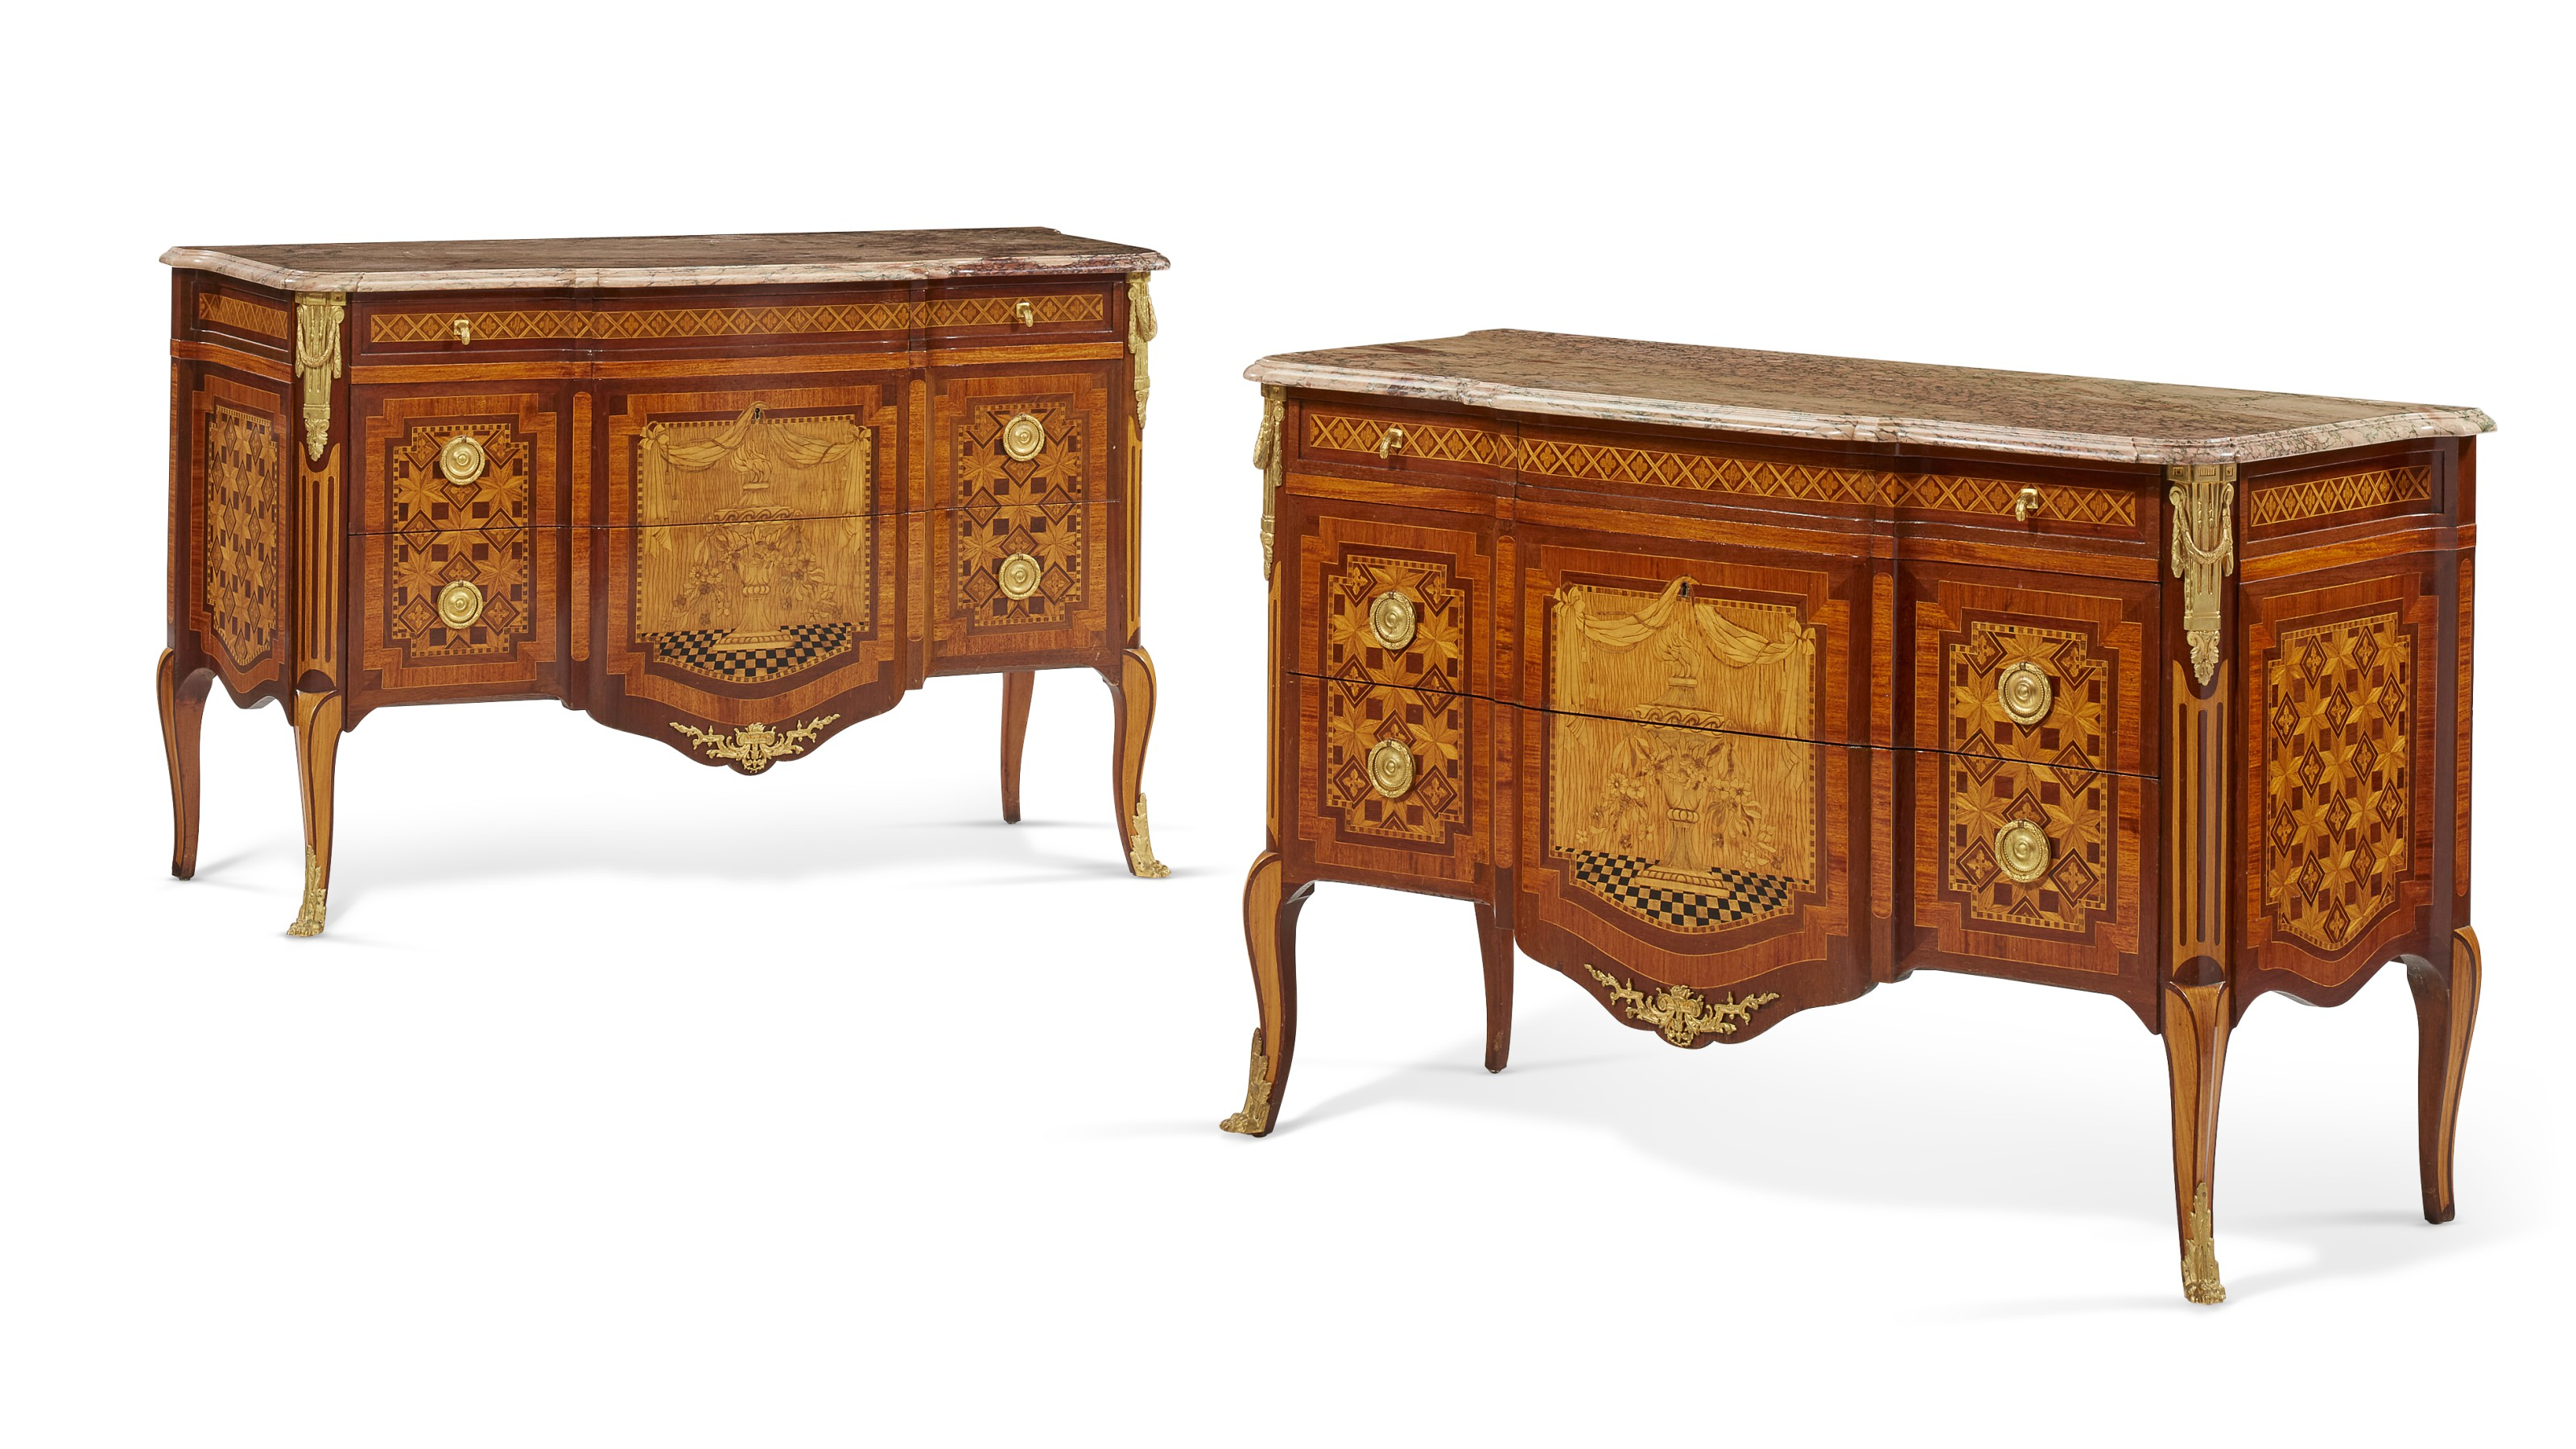 A pair of French ormolu-mounted mahogany, amaranth, fruitwood, marquetry and parquetry commodes, early 20th century. 34  in (86.5  cm) high, 52½  in (133.5  cm) wide, 23¼  in (59  cm) deep. Estimate $8,000-12,000. Offered in The Collector English & European Furniture, Ceramics, Silver & Works of Art on 5-19 October 2021 at Christie's Online